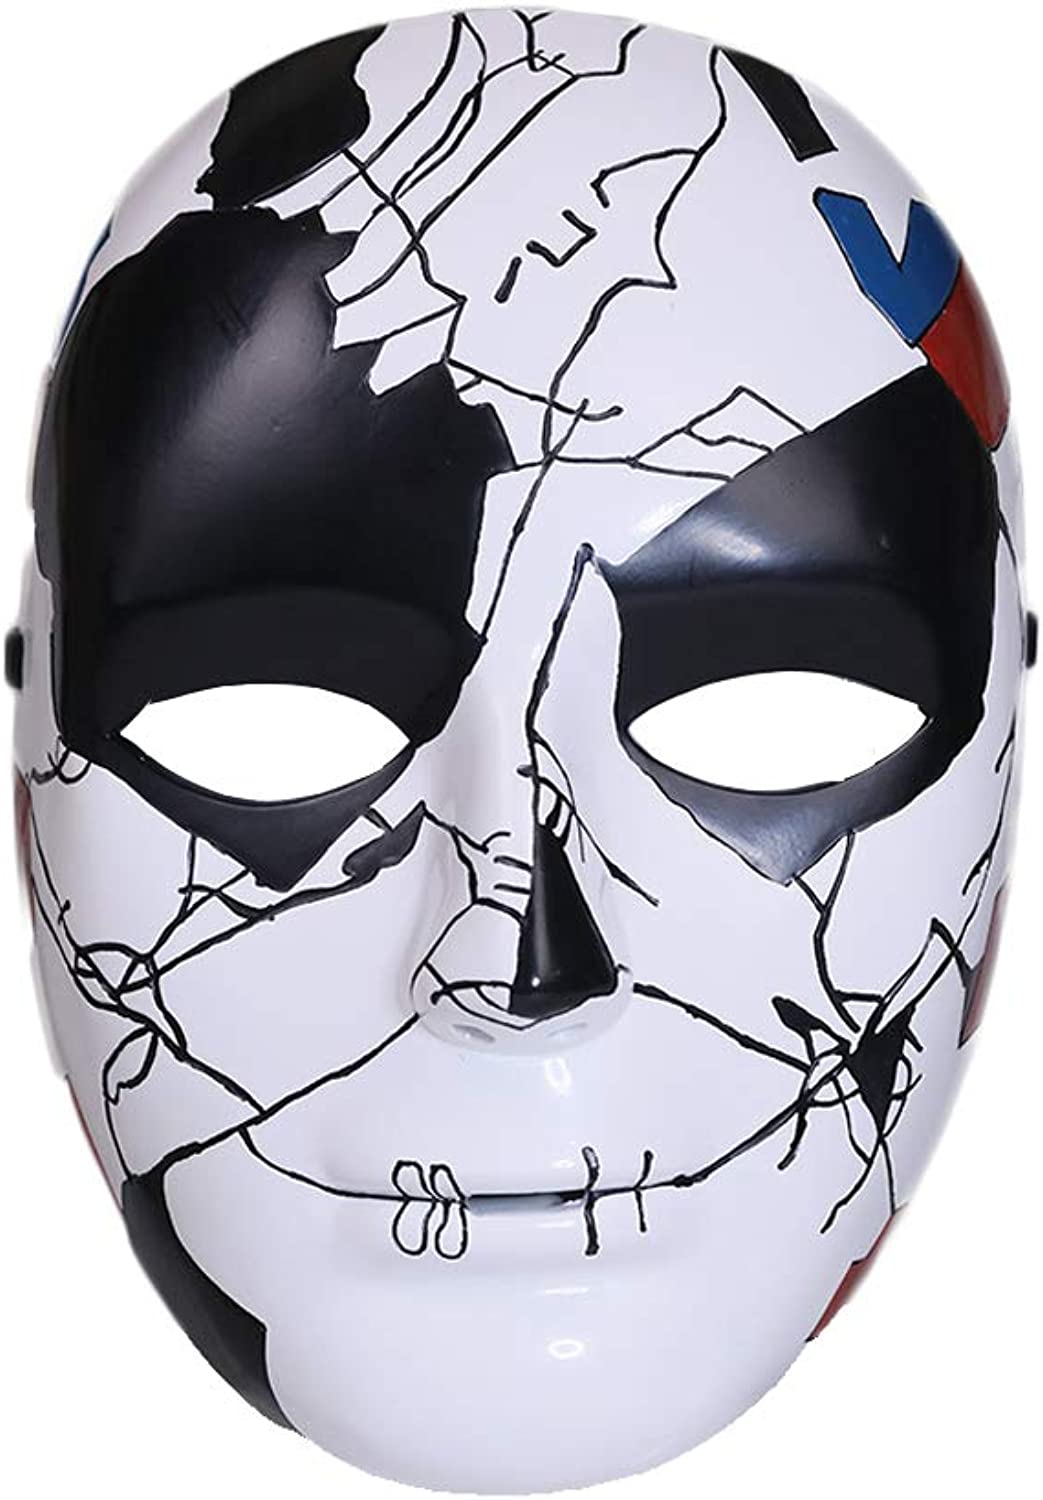 Billy Russo Mask Cosplay Costume Resin Helmet Replica for Adult Men Halloween Fancy Dress Clothing Accessories